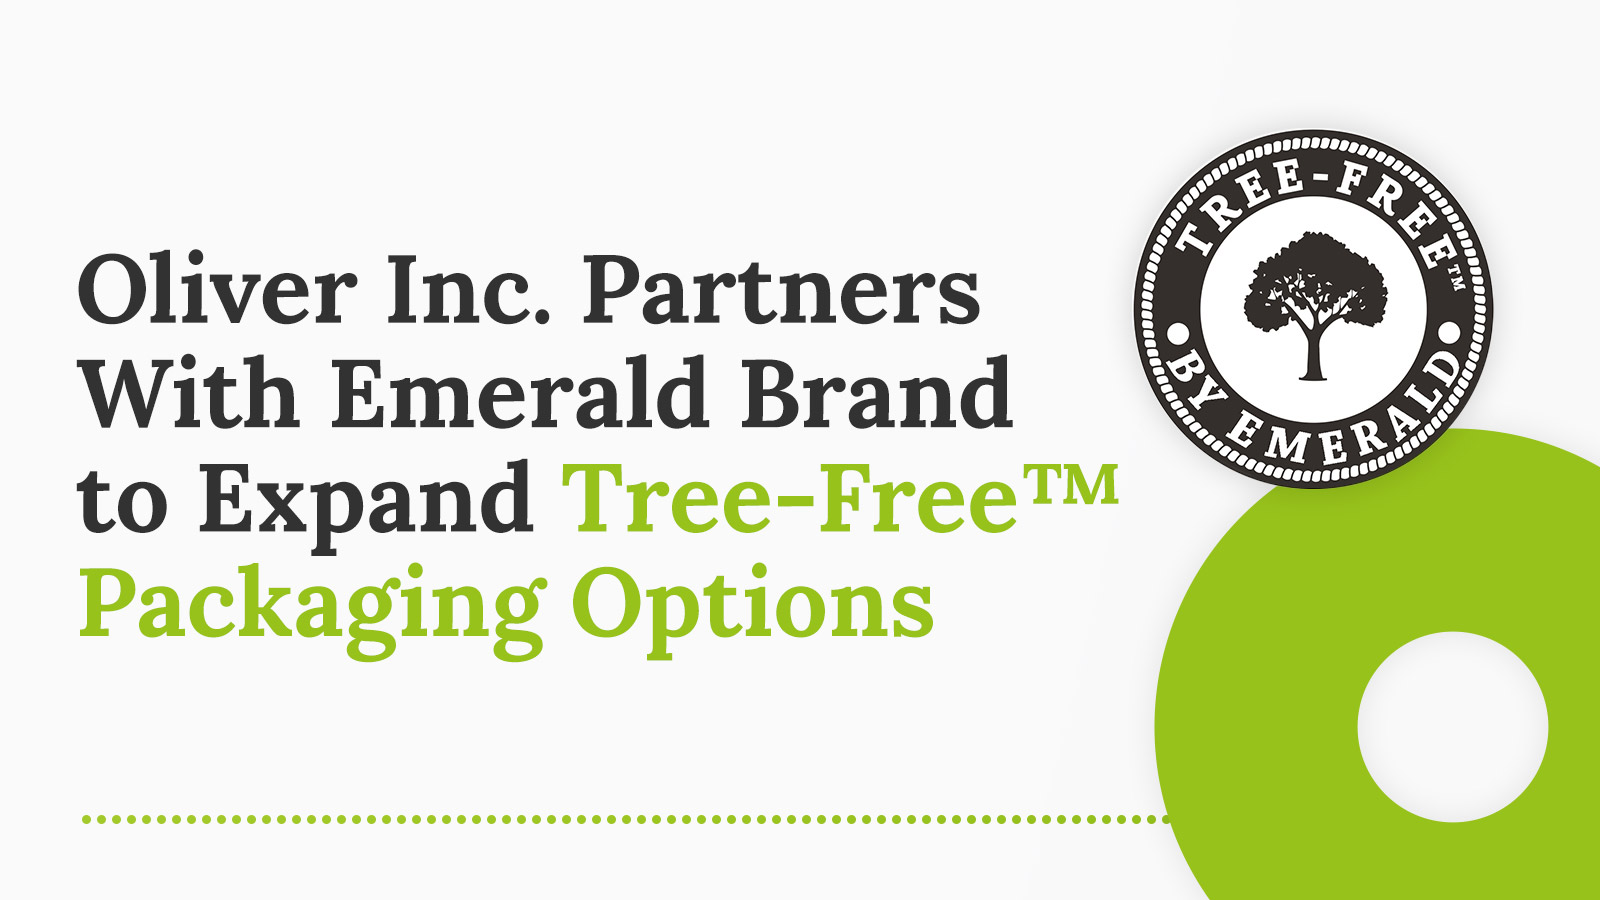 Oliver Inc. Partners With Emerald Brand to Expand Tree-Free™ Packaging Options